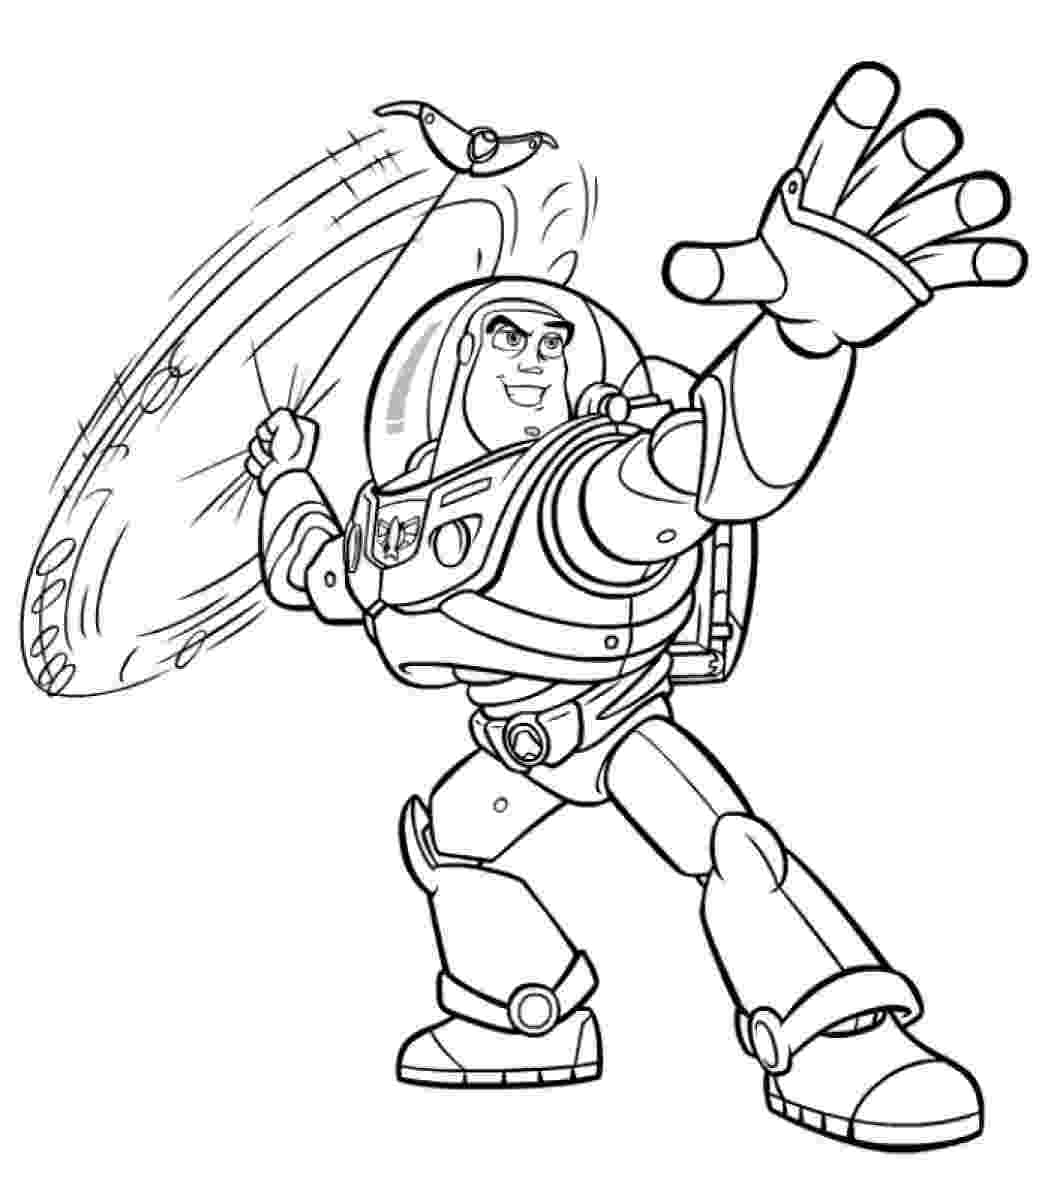 buzz lightyear printable coloring pages free printable buzz lightyear coloring pages for kids printable pages coloring buzz lightyear